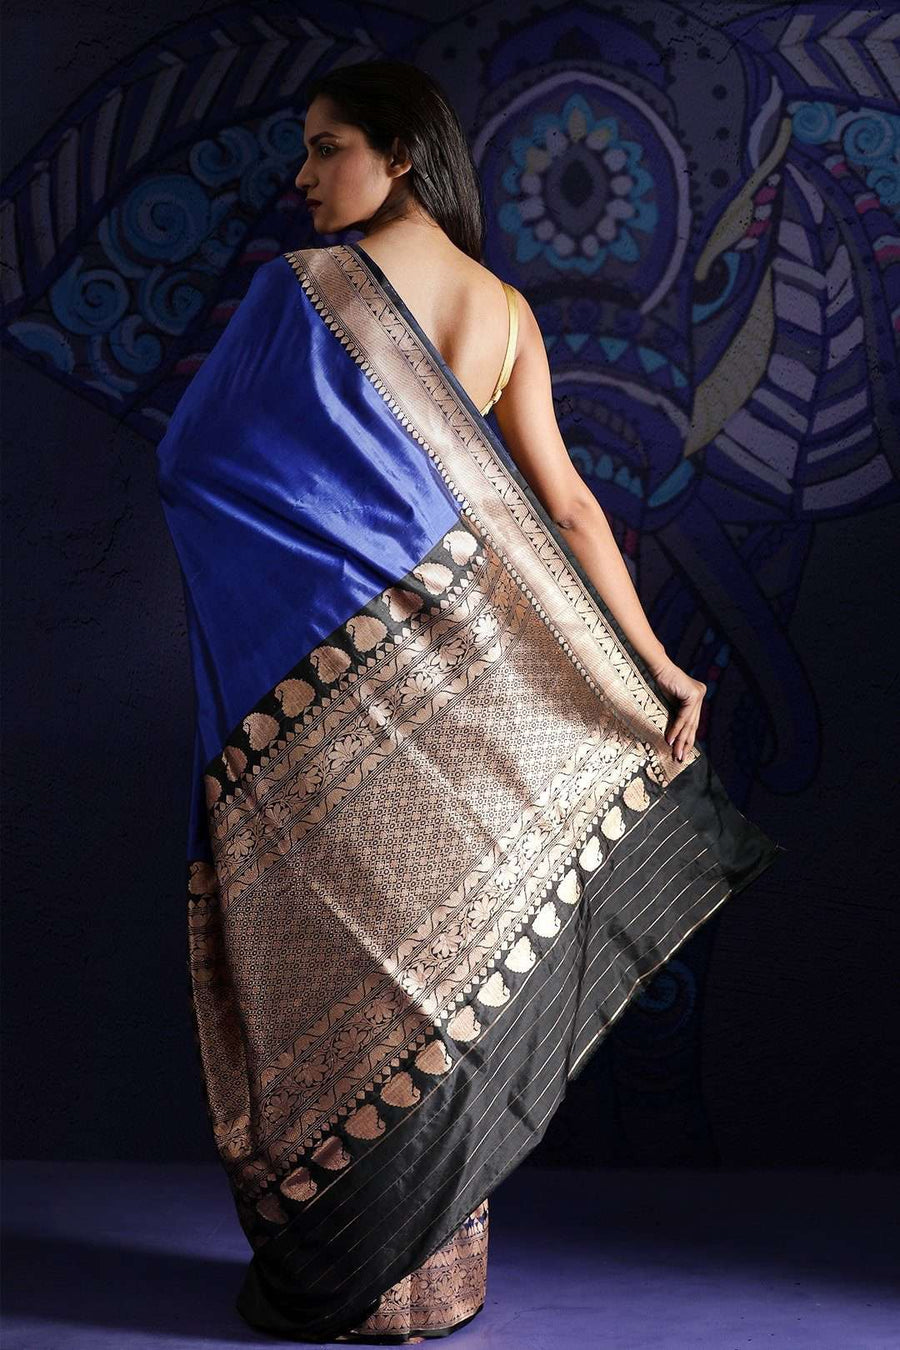 Blue Banaras Silk Saree With Zari Kriti Classics Roopkatha - A Story of Art